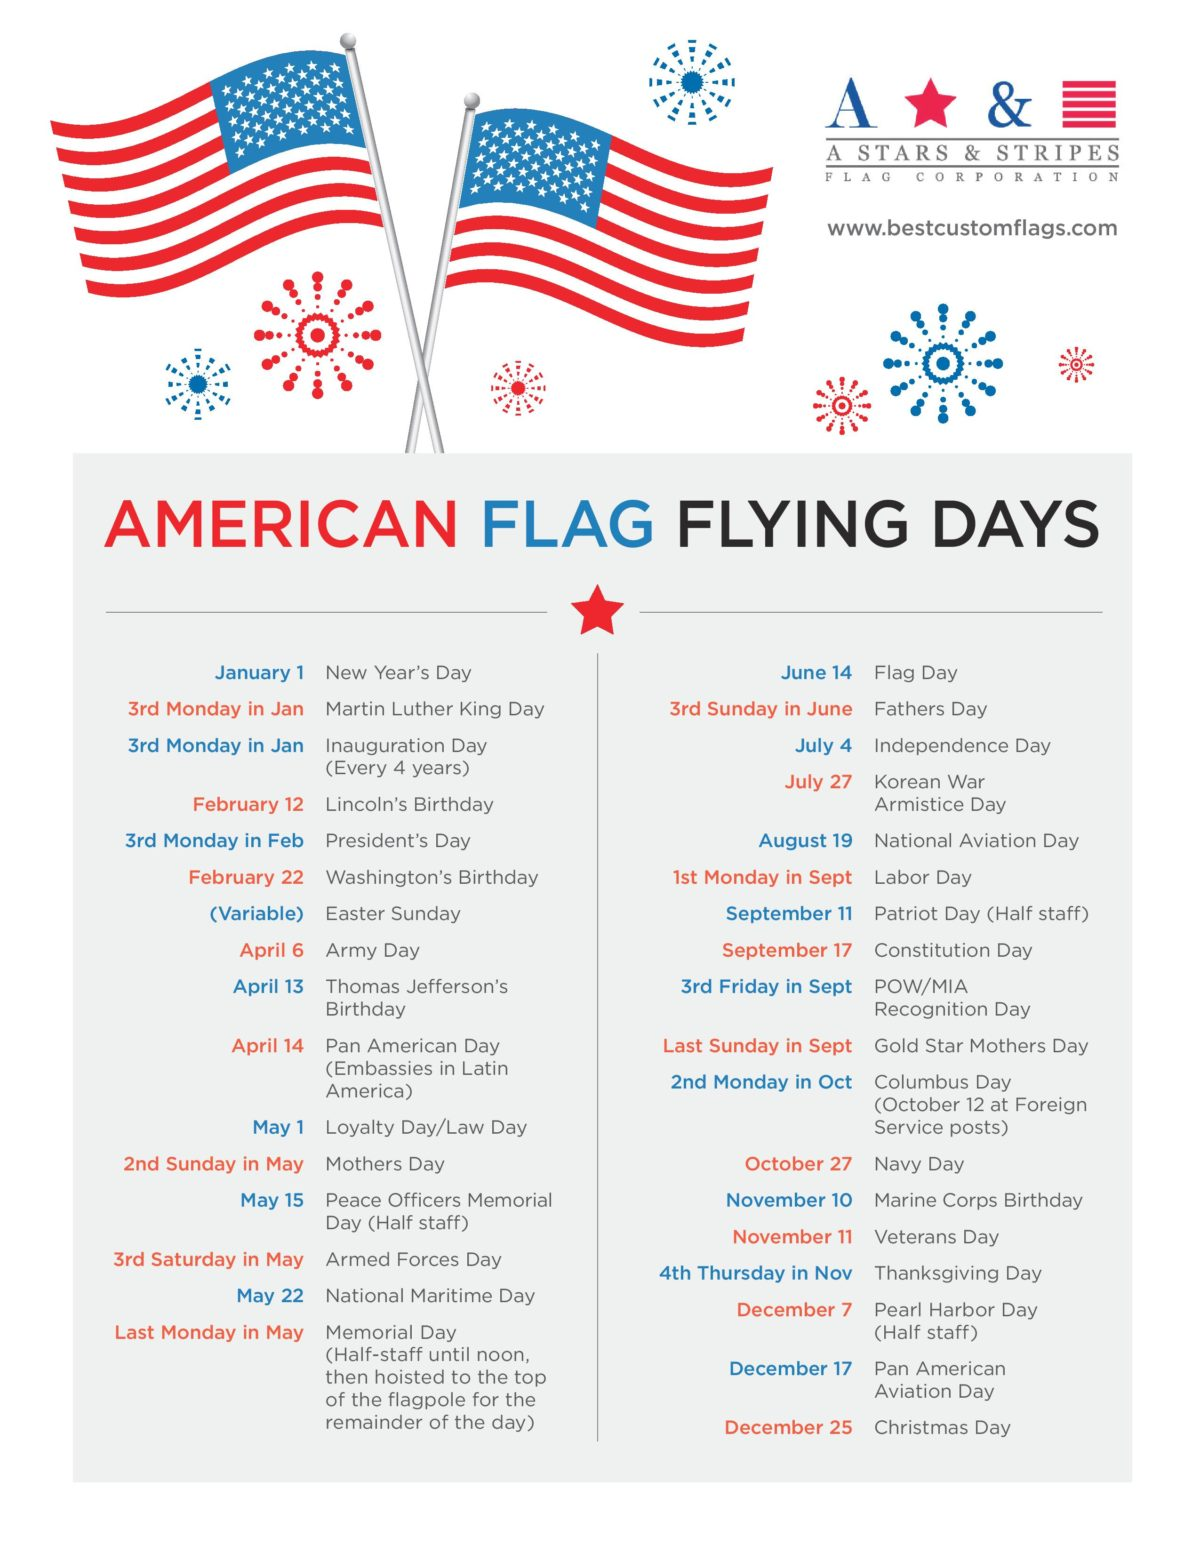 American Flag Flying Days American Flag Flying Holidays